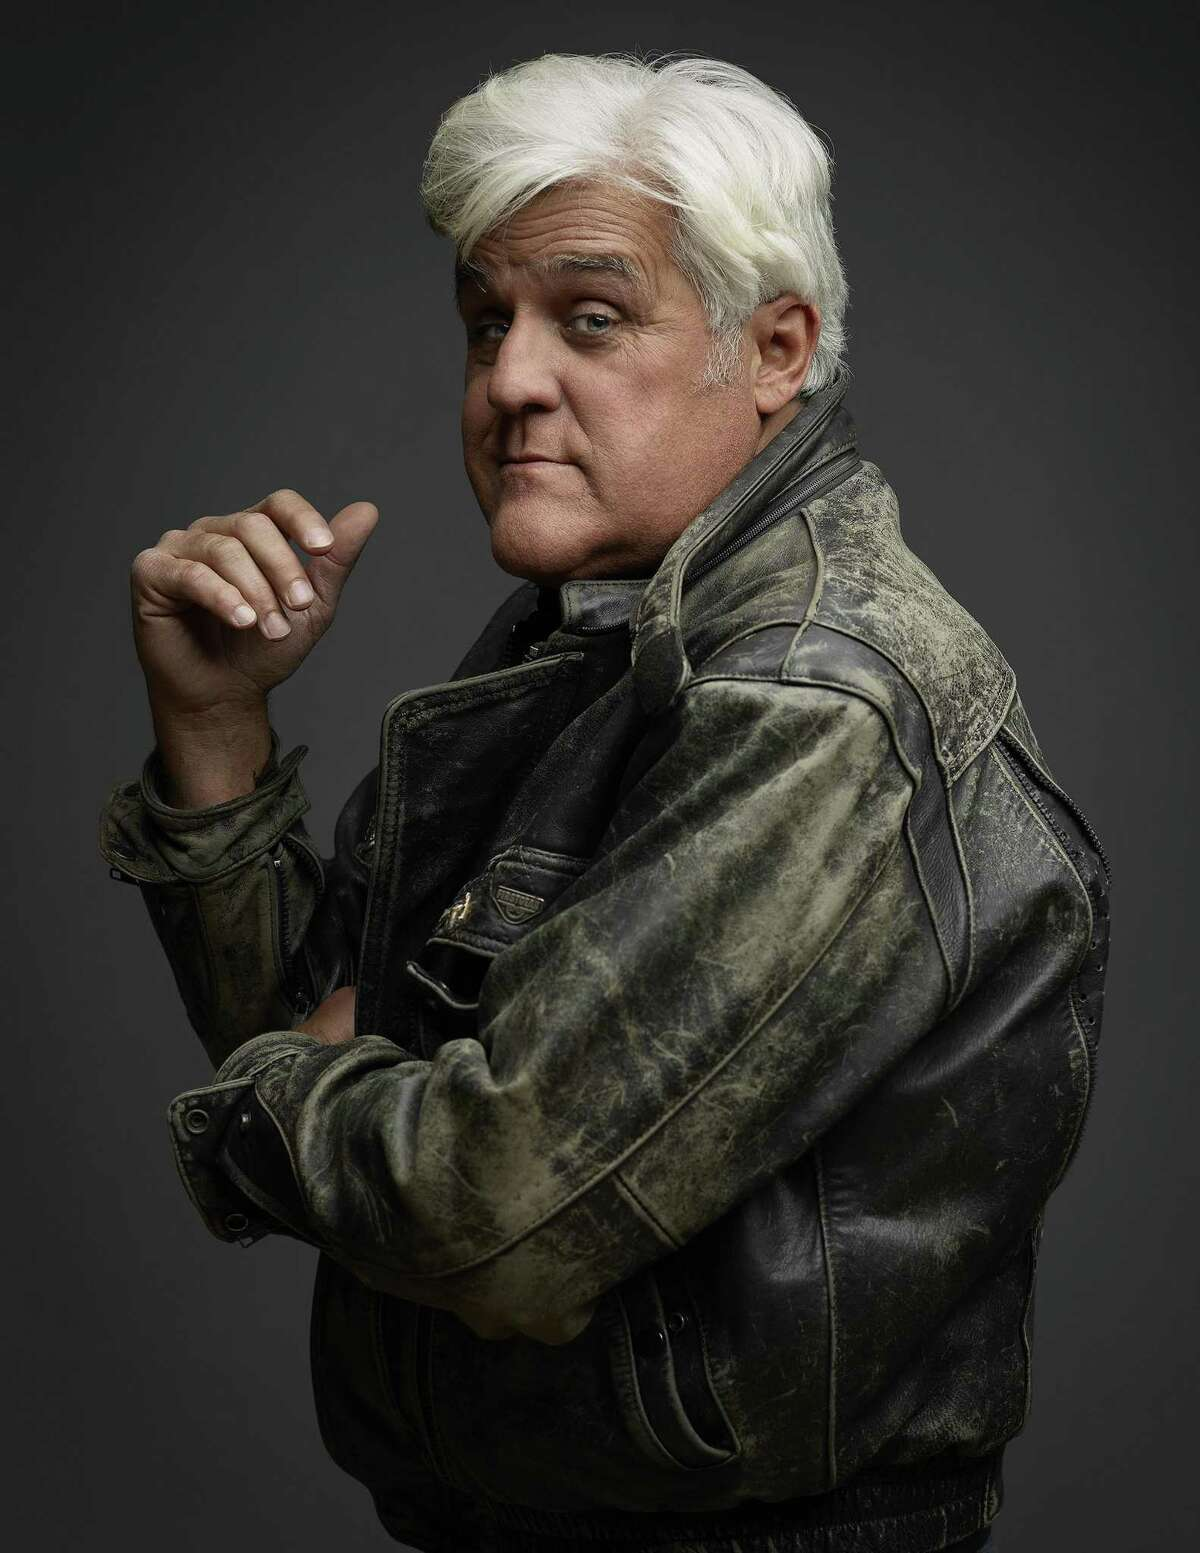 """Jay Leno: He's almost 70, but Jay Leno's got no beef with being on the road. Leno was host of """"The Tonight Show With Jay Leno"""" from 1992 to 2009 and again from 2010 to 2014, and he's got a CNBC show called """"Jay Leno's Garage,"""" but he's never stopped touring the country doing stand-up. """"Why wouldn't you want to be on the road?"""" he asked in an interview late last year with the Sarasota (Florida) Herald-Tribune. """"It's a lot of fun, you go places, people are anxious to see you.""""?- 7:30 p.m. Friday, Majestic Theatre, 224 E. Houston St. $55-$125. majesticempire.com - Jim Kiest"""